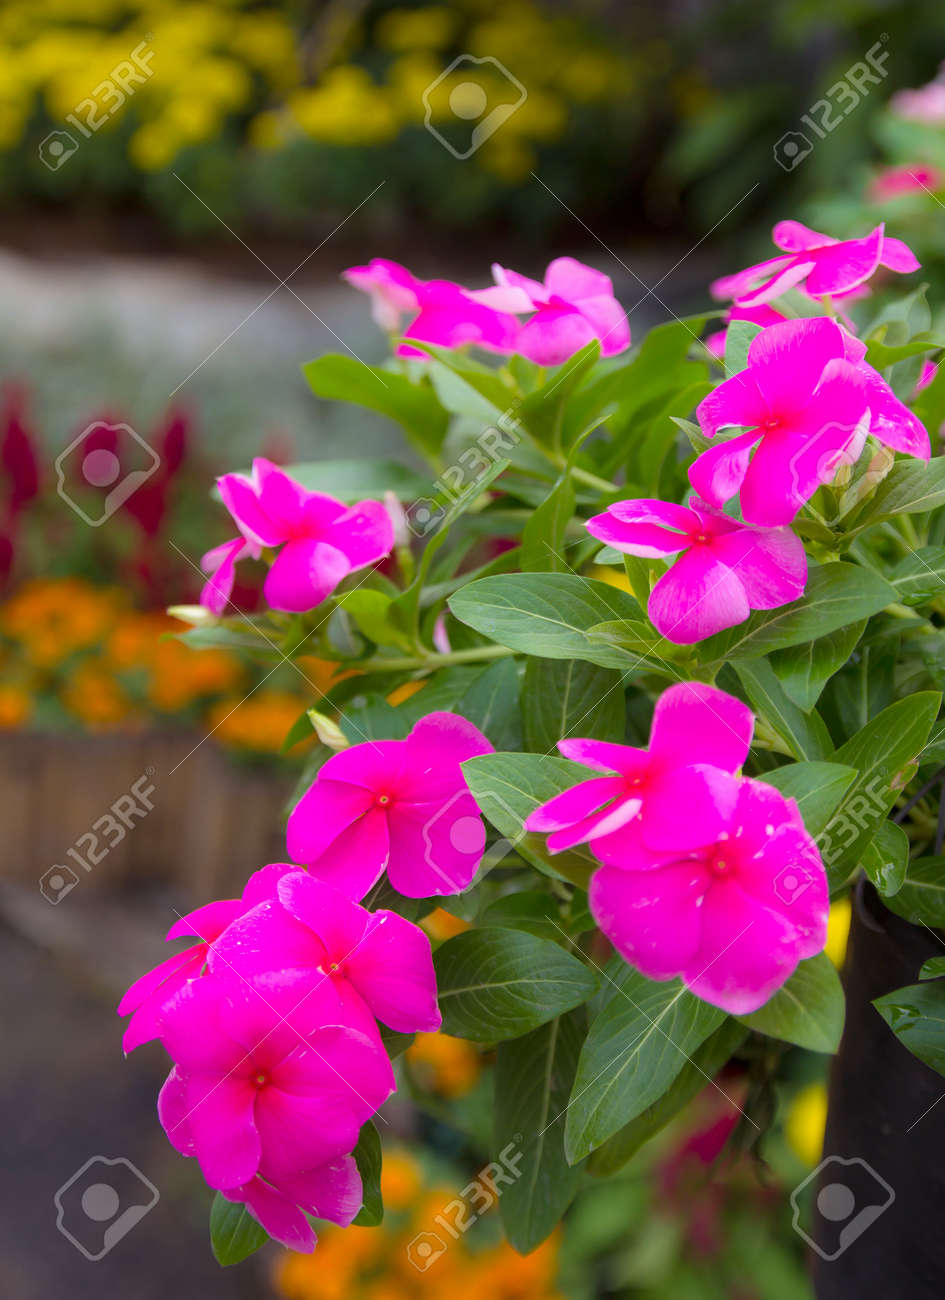 Pink Roseus Flowers In Garden The Scientific Name Catharanthus